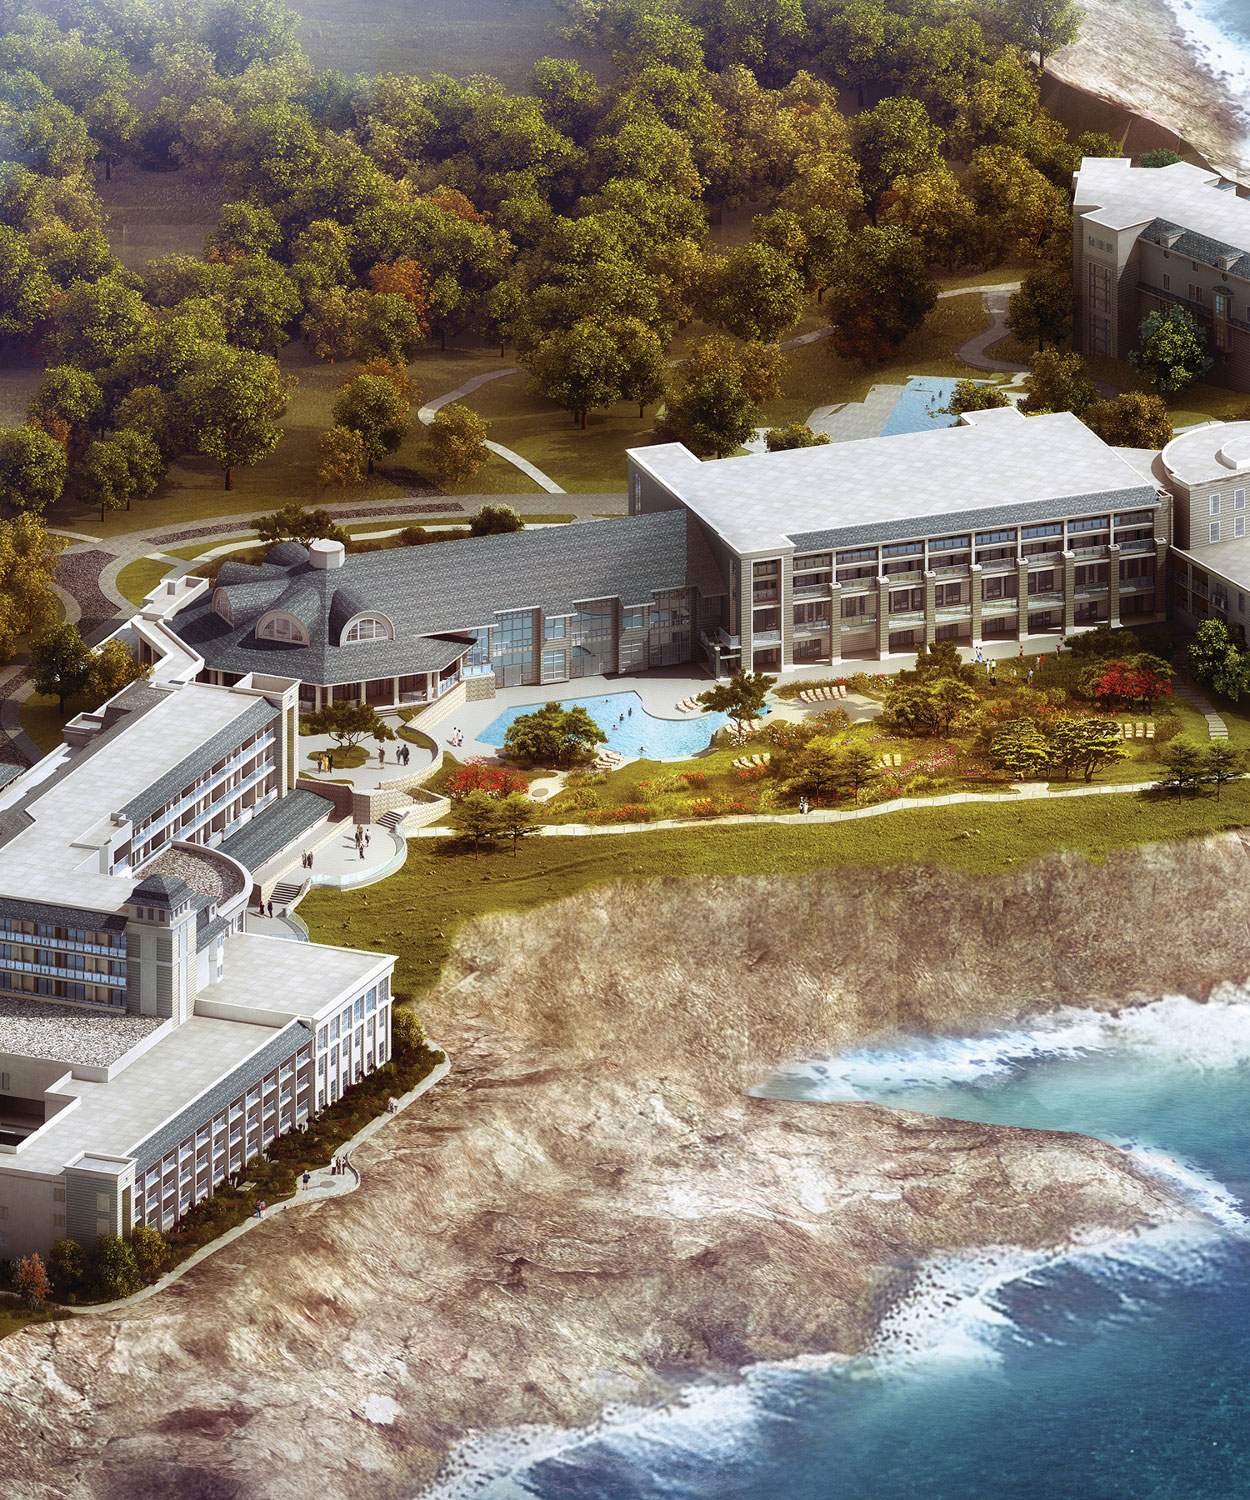 Associated luxury hotels international alhi adds its first hotel member in maine